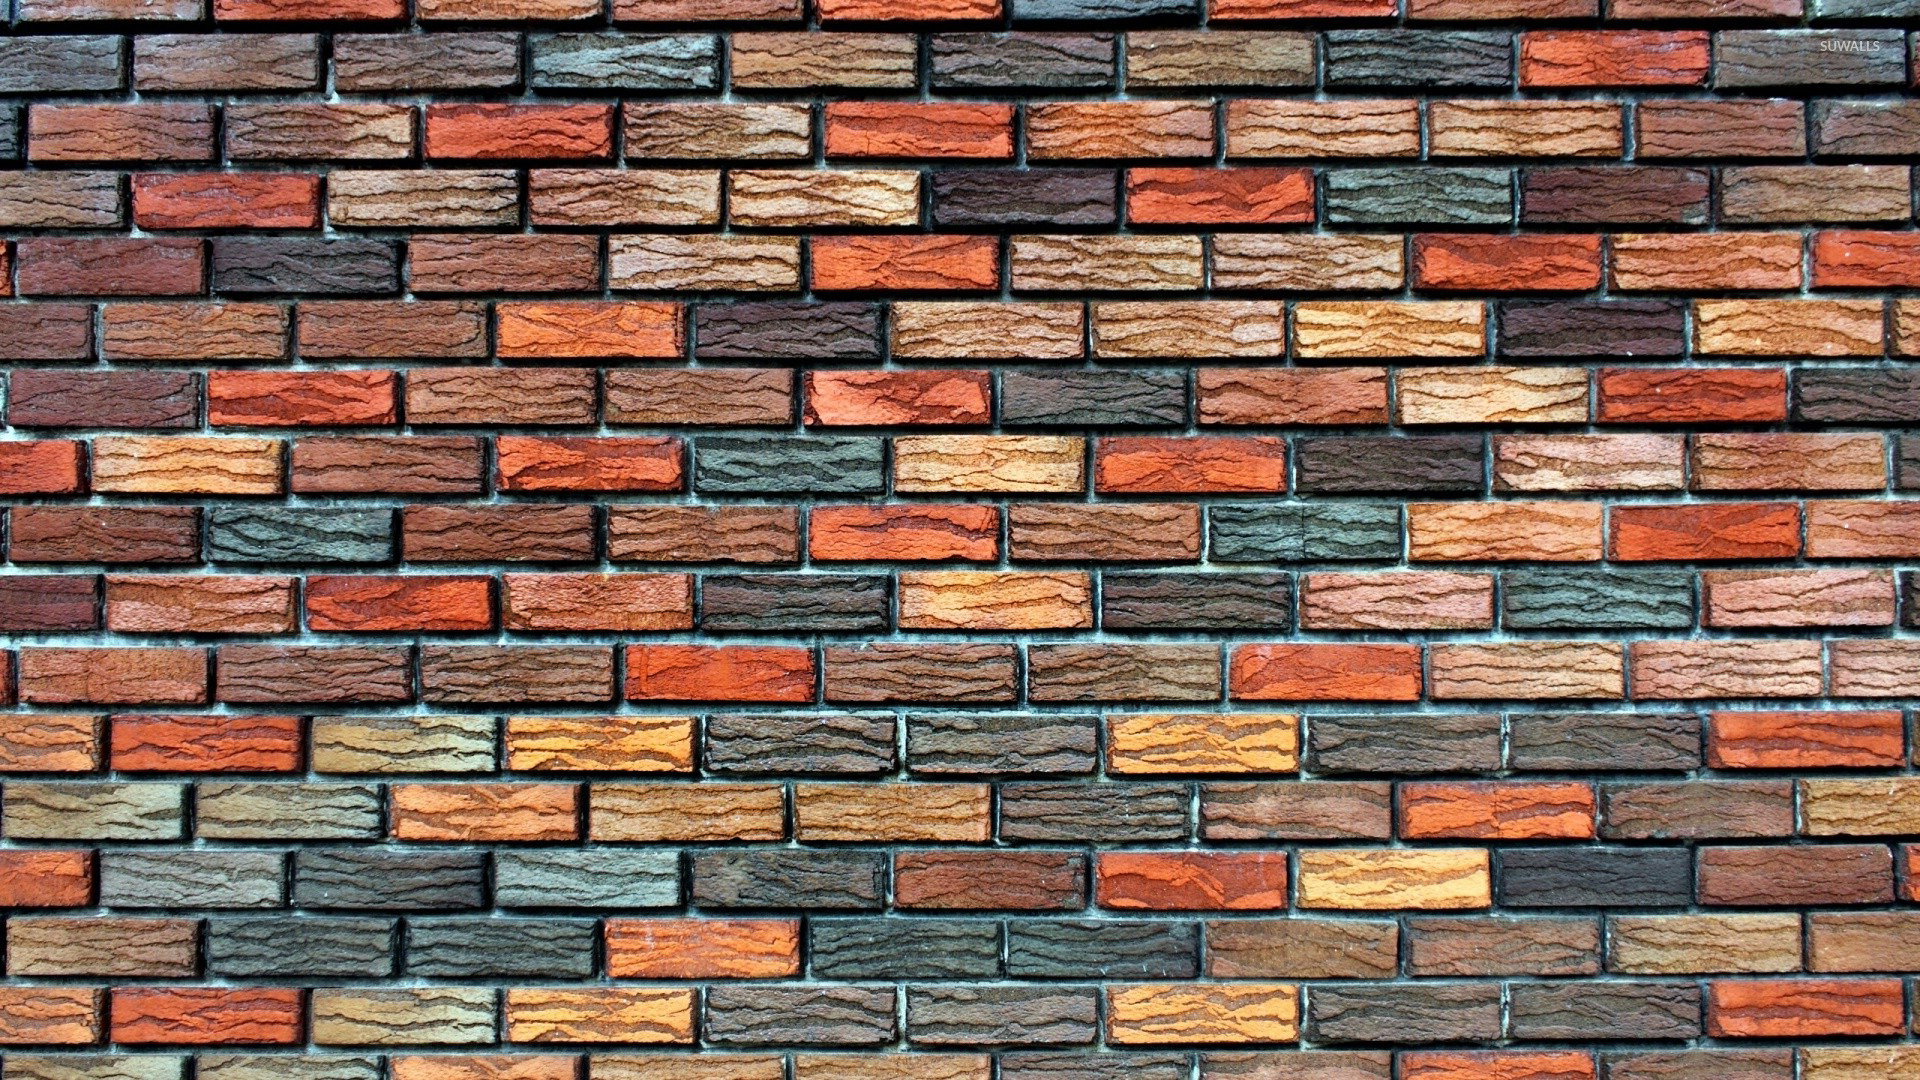 Brick wall wallpaper photography wallpapers 22360 for Wall to wall wallpaper